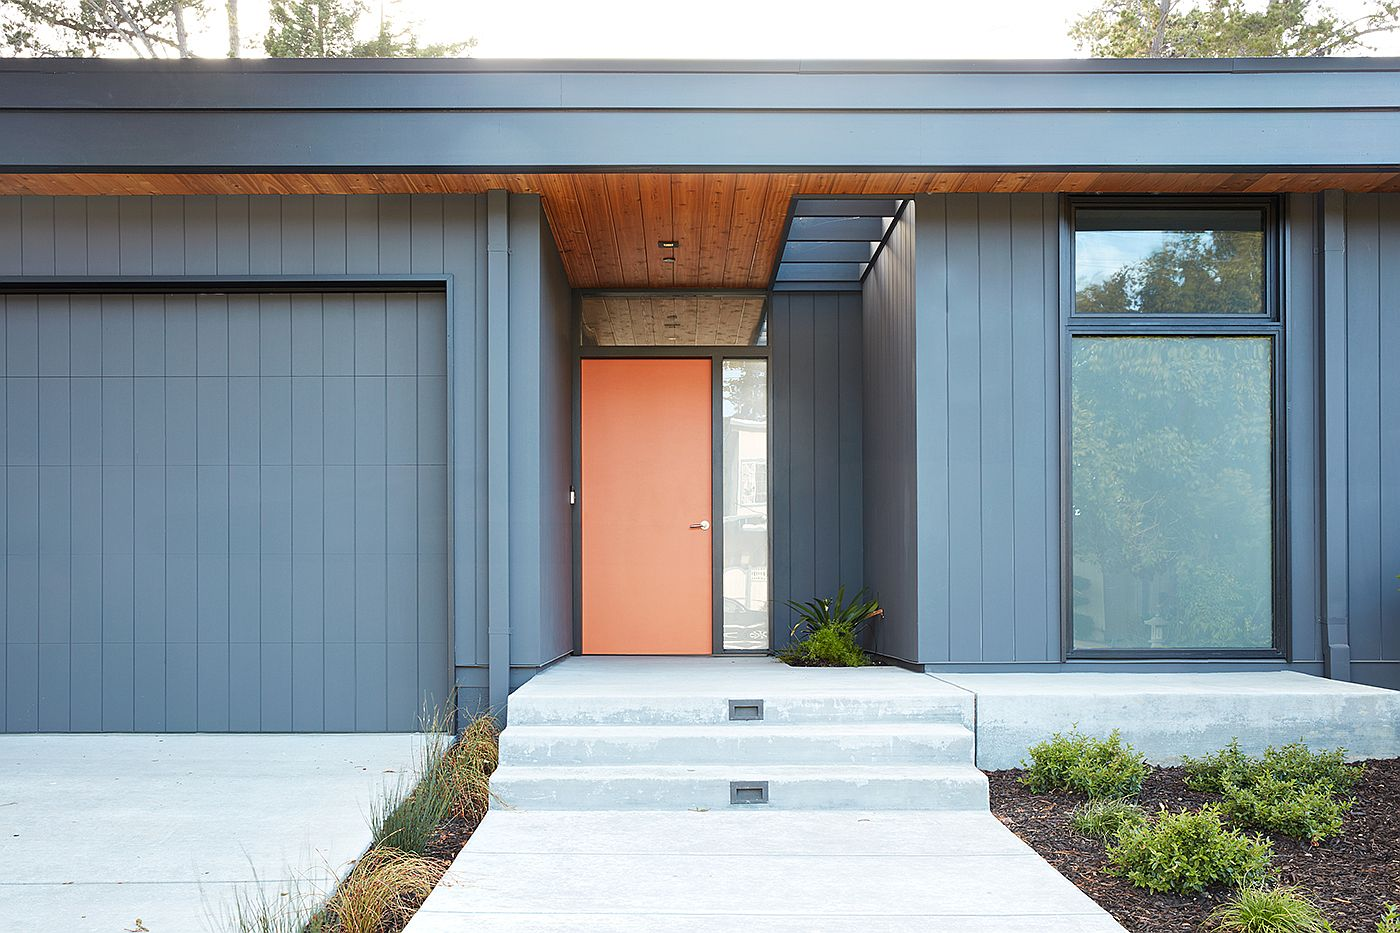 Orange door and gray exterior give the home a classic Eichler-inspired look